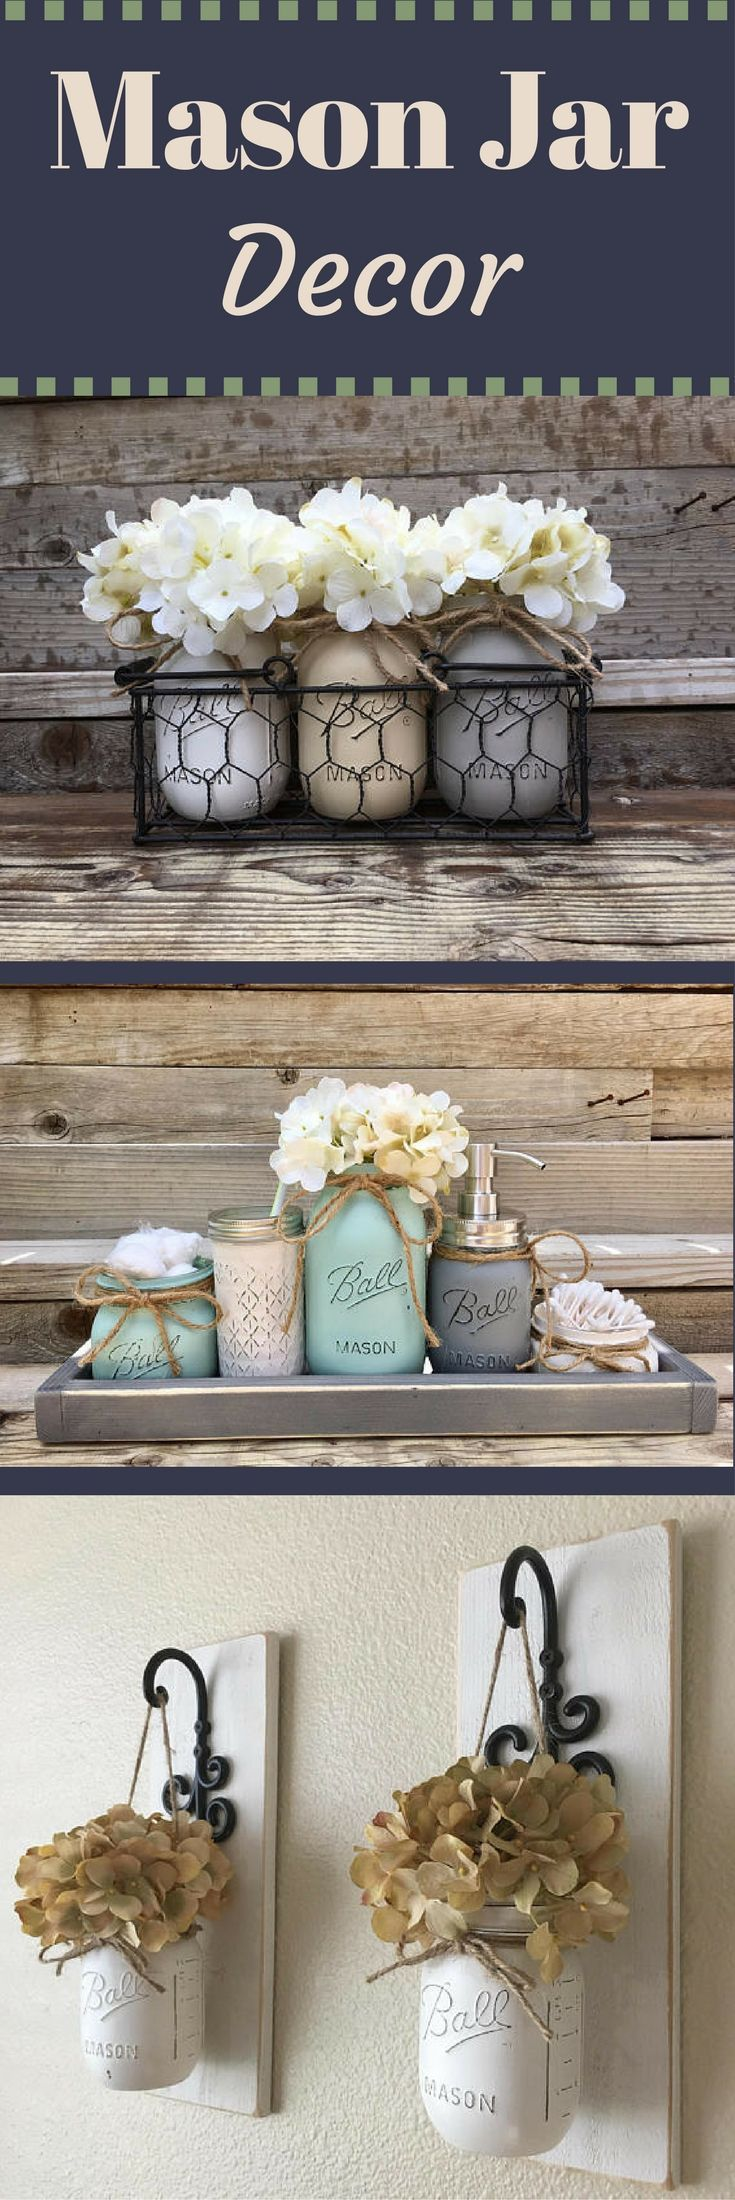 best 25 rustic shabby chic ideas on pinterest rustic. Black Bedroom Furniture Sets. Home Design Ideas